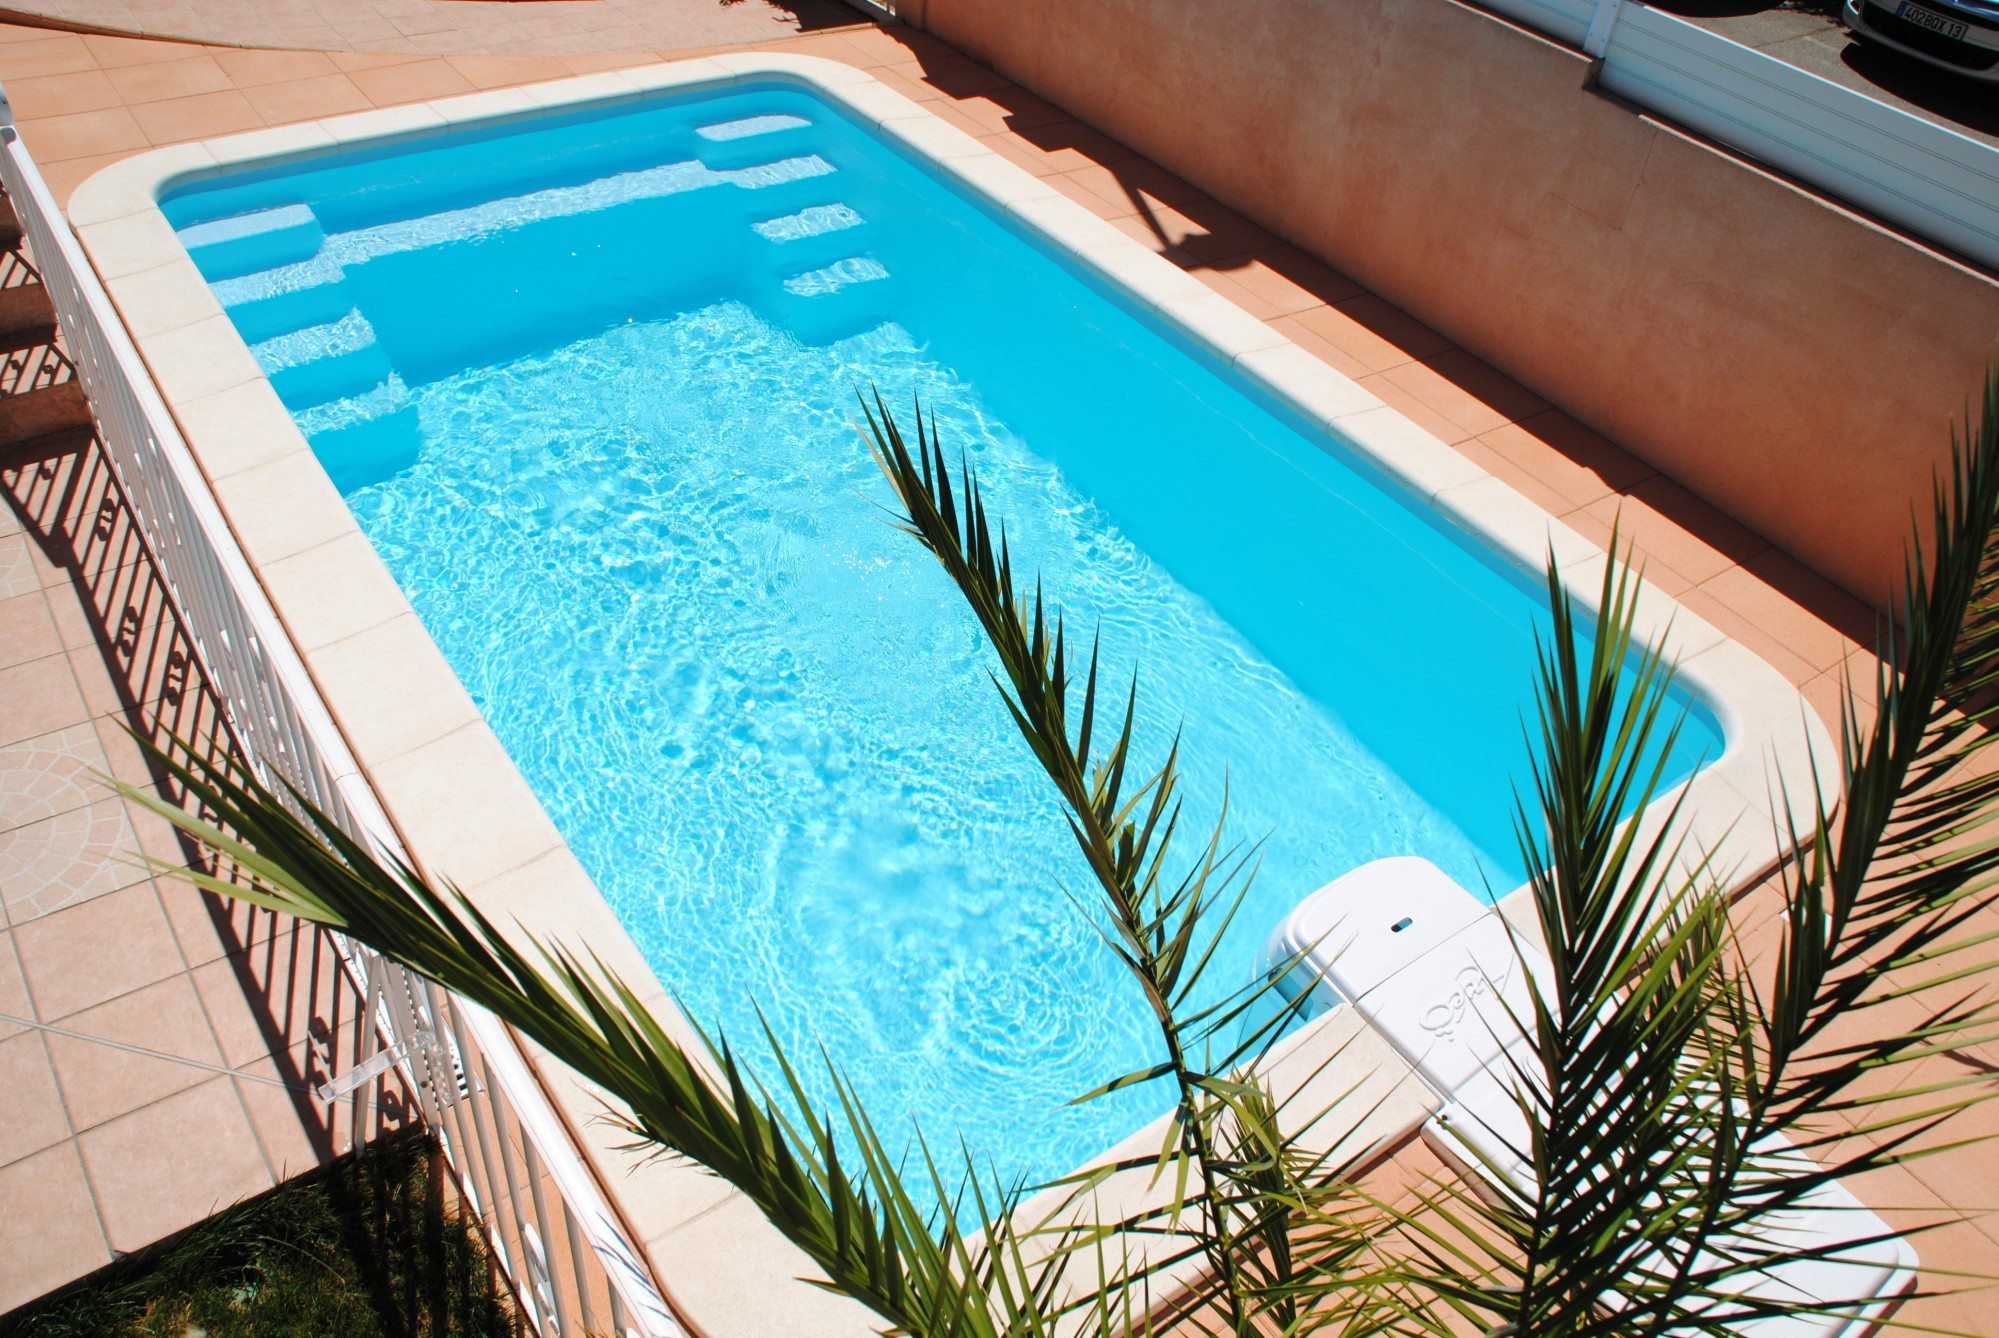 Piscine enterr e coque 6x3 pr te plonger prix for Prix piscine enterree